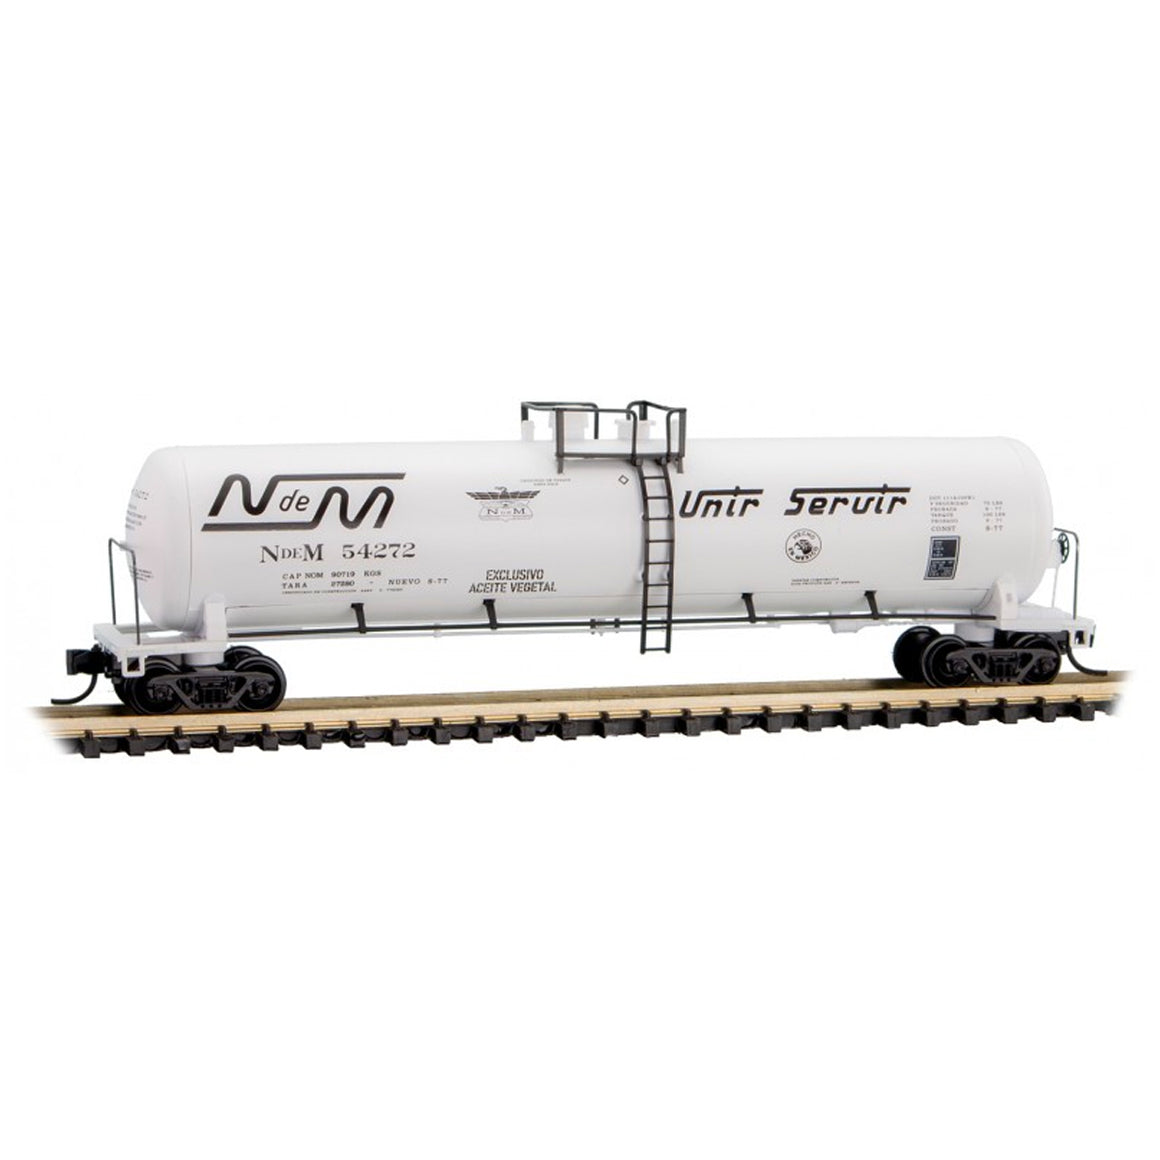 N Scale: 56' General Service Tank Car - NdeM 'Vegetable Oil Service'